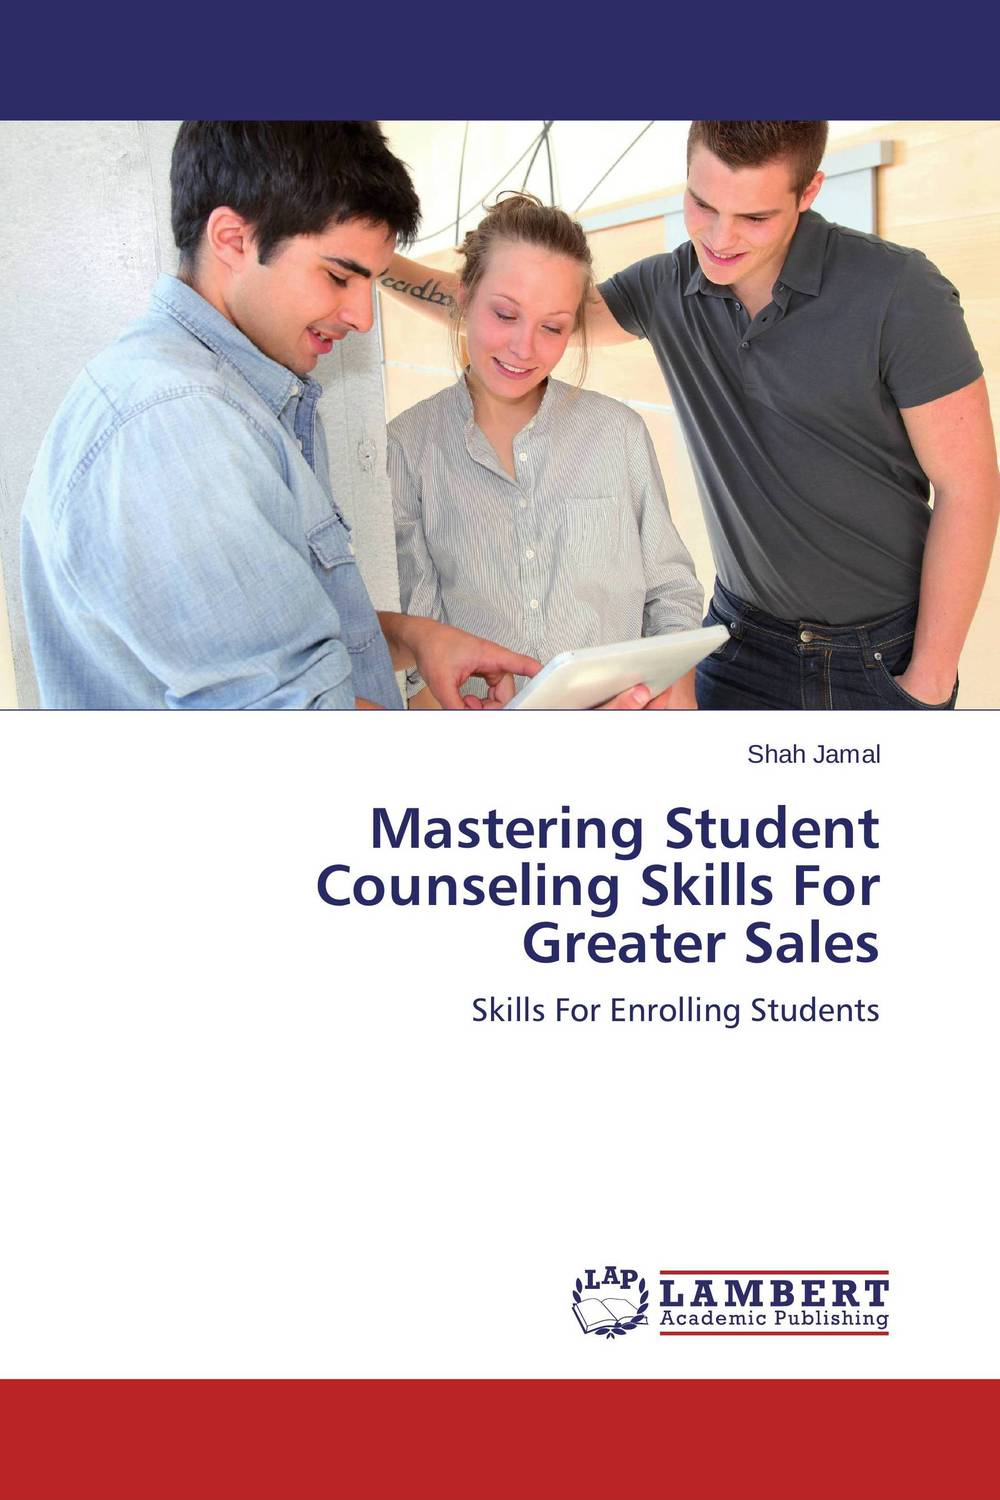 Mastering Student Counseling Skills For Greater Sales get wise mastering grammar skills mastering math skills mastering vocabulary skills mastering writing skills